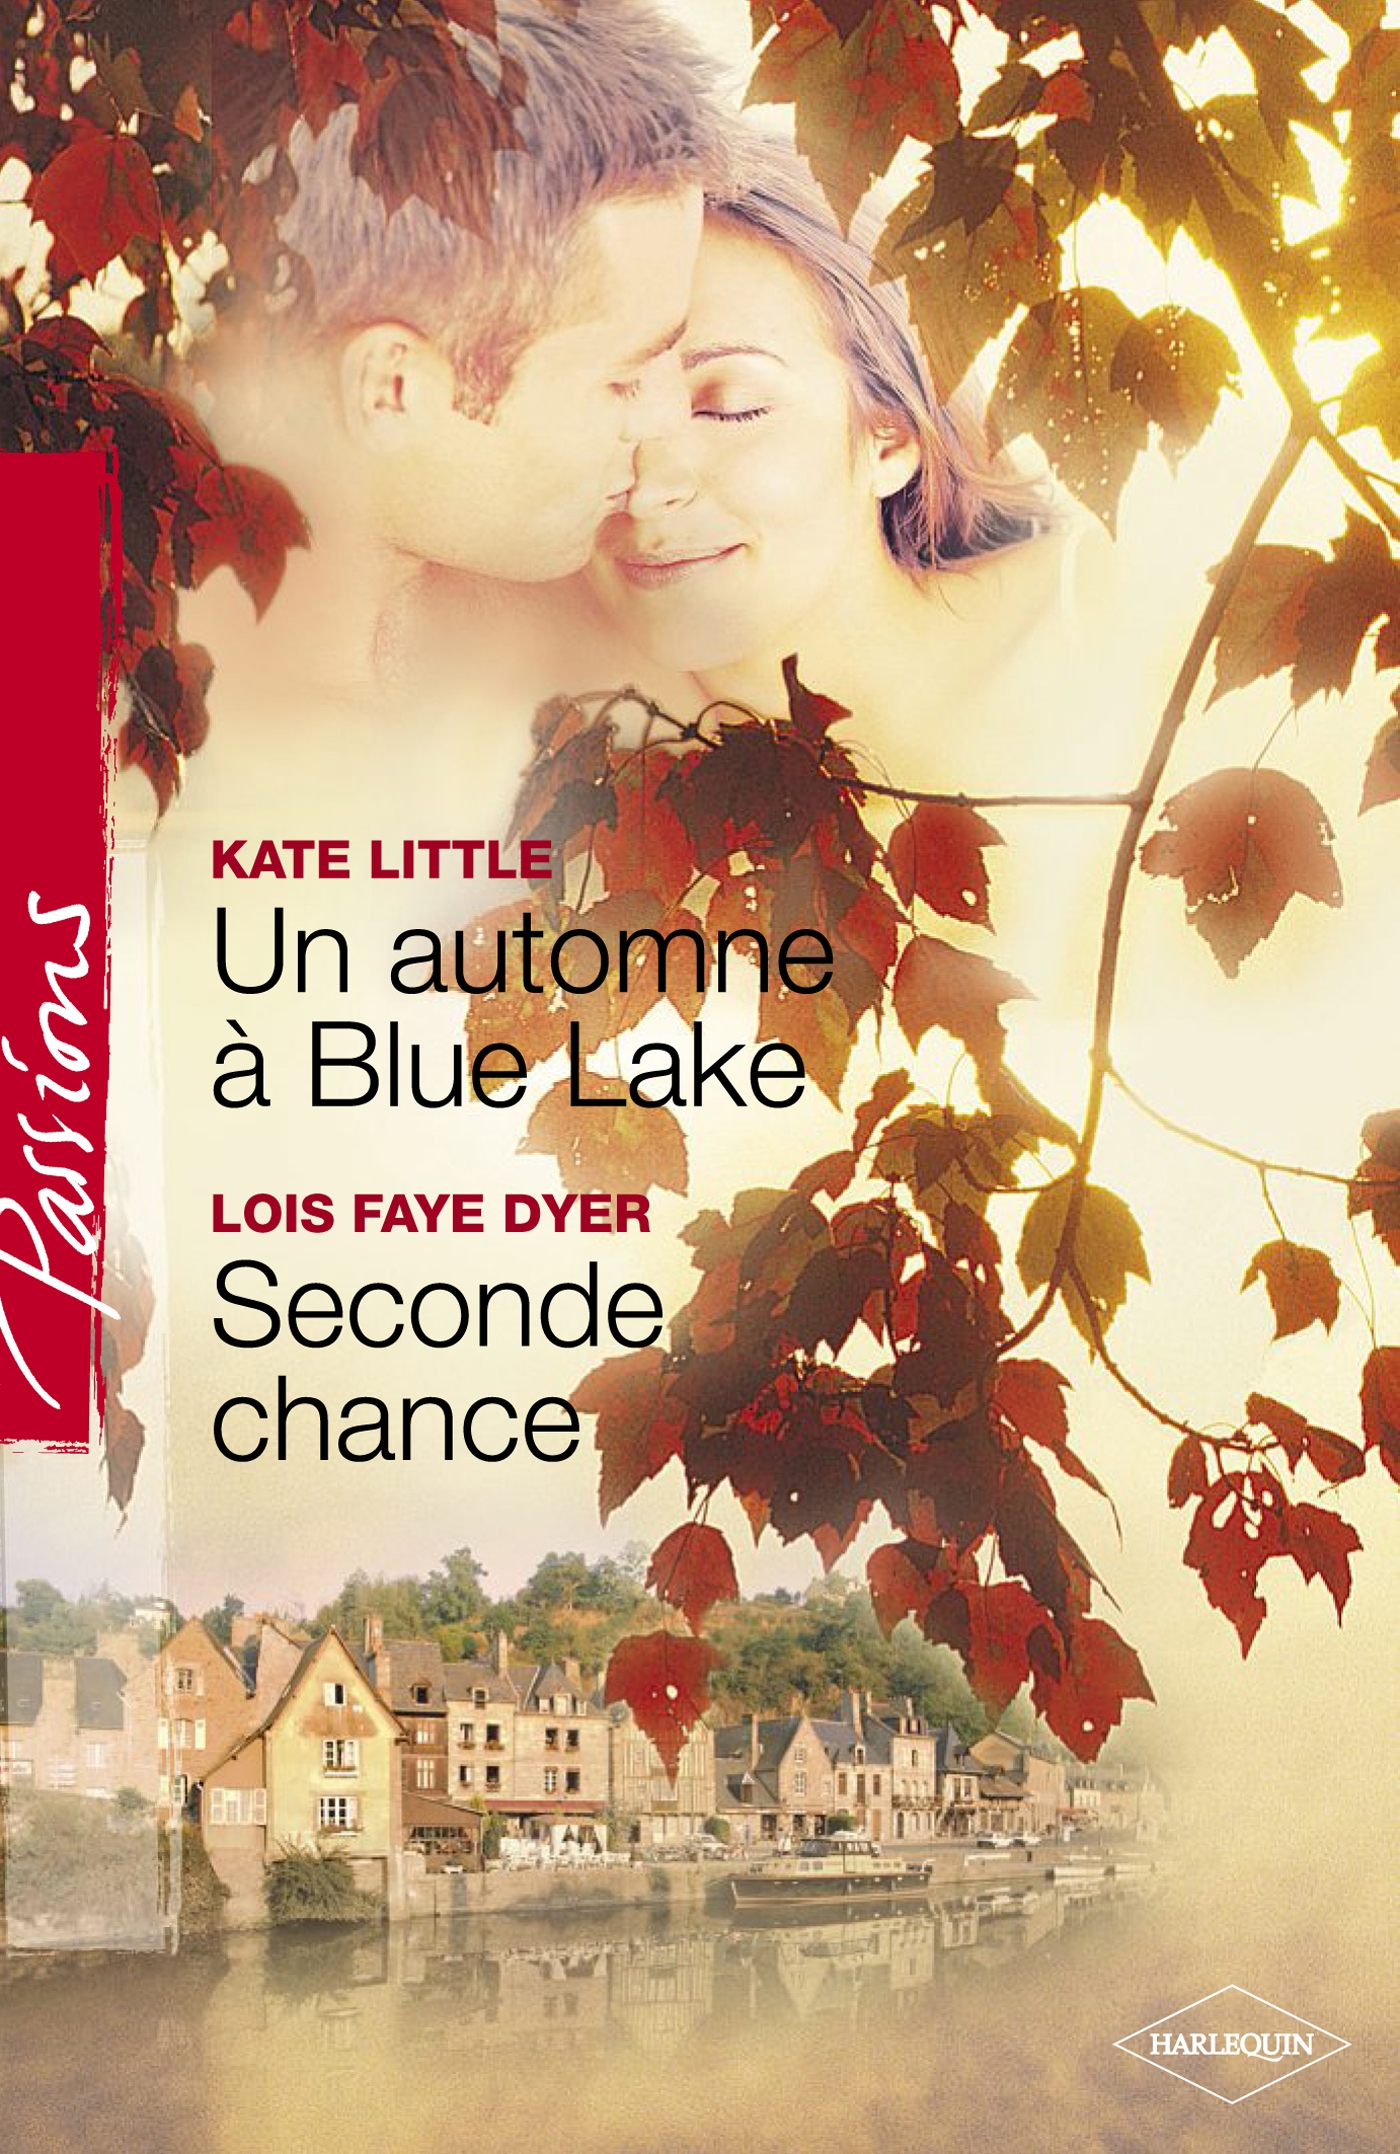 Un automne à Blue Lake - Seconde chance (Harlequin Passions)